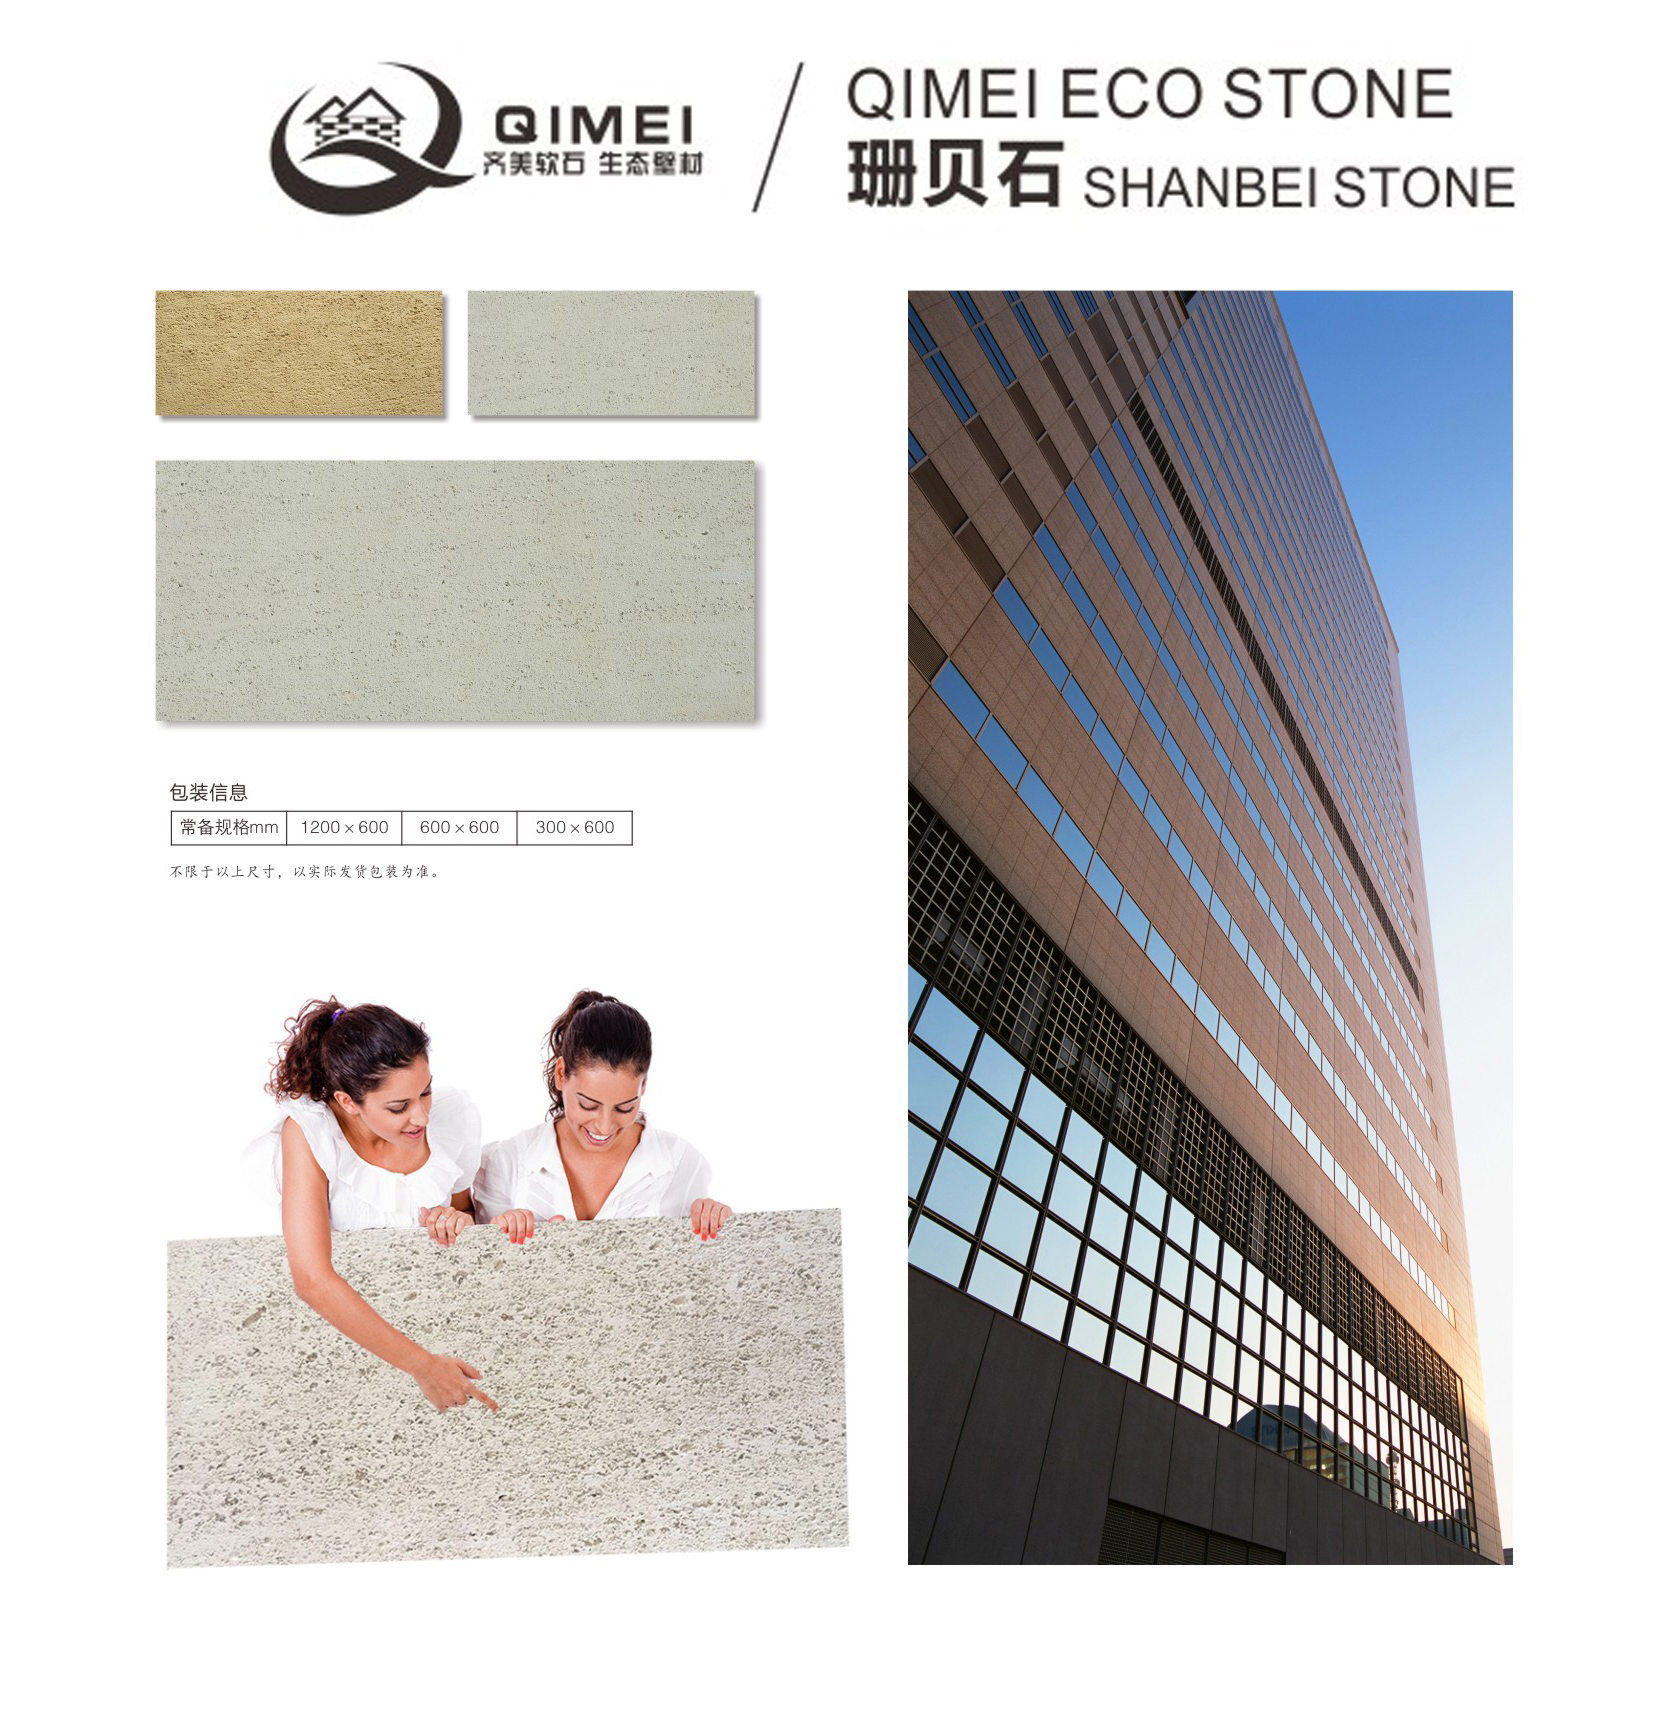 China baidai customized and personalized soft stone natural texture and touching feeling